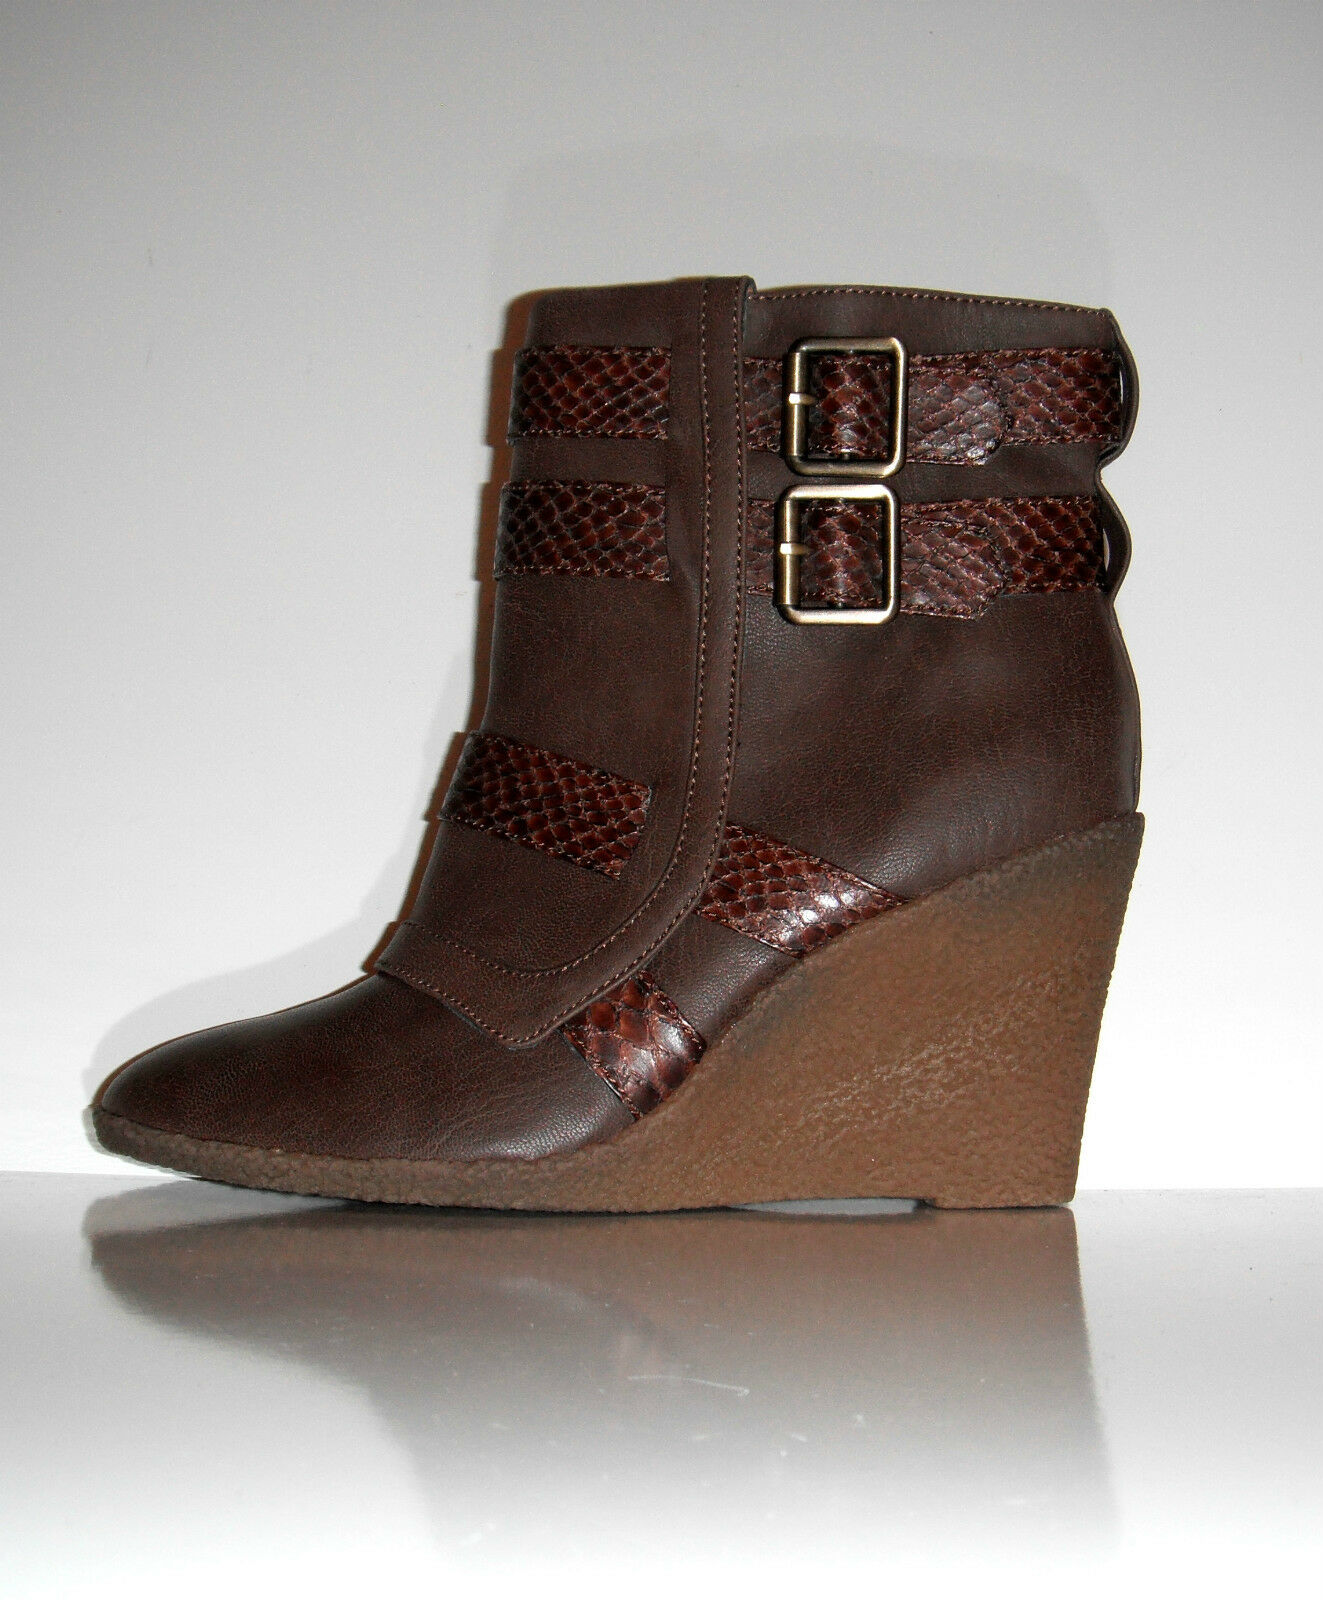 New Kathy Van Zeeland Montana Brown Wedge Ankle Comfortable Boots sz 10